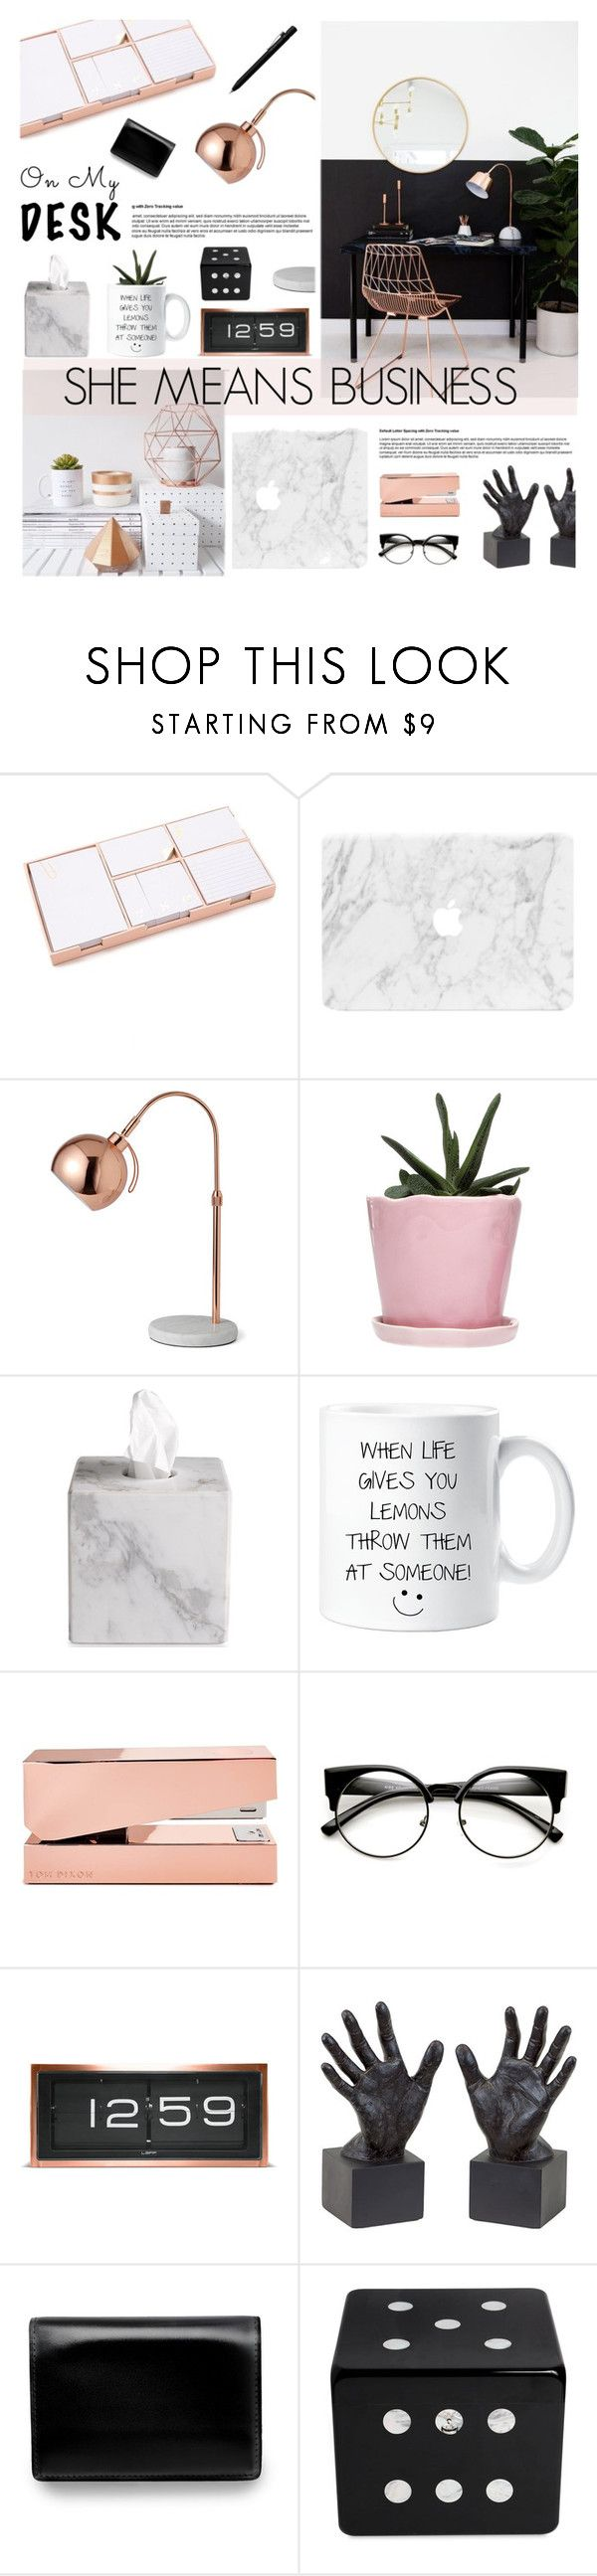 """""""Business"""" by fee4fashion ❤ liked on Polyvore featuring interior, interiors, interior design, home, home decor, interior decorating, Kate Spade, Dot & Bo, Waterworks and Tom Dixon"""